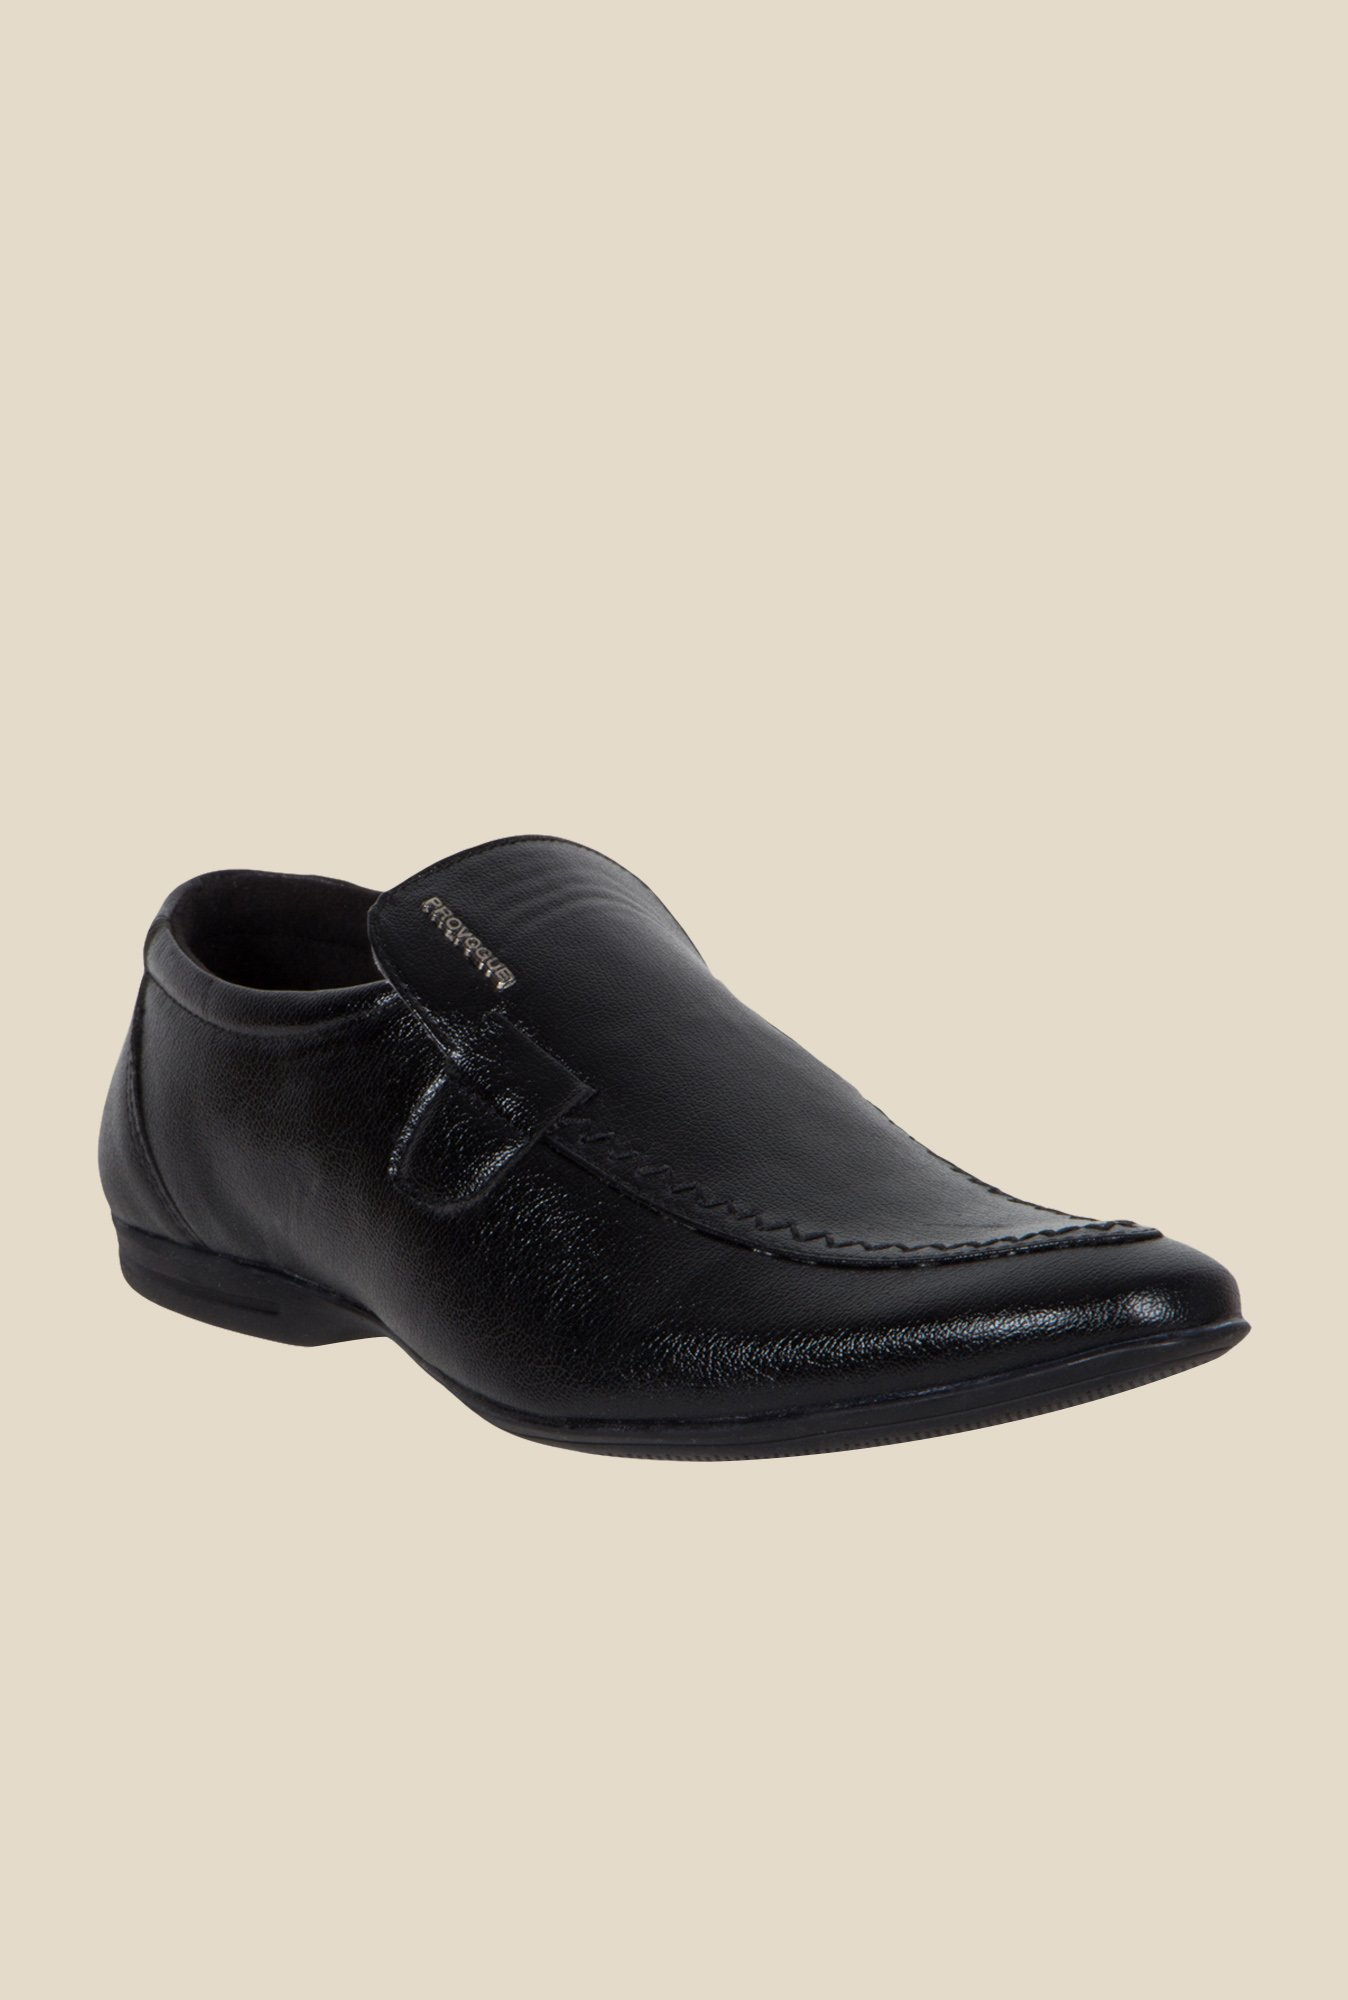 Provogue Black Formal Slip-Ons